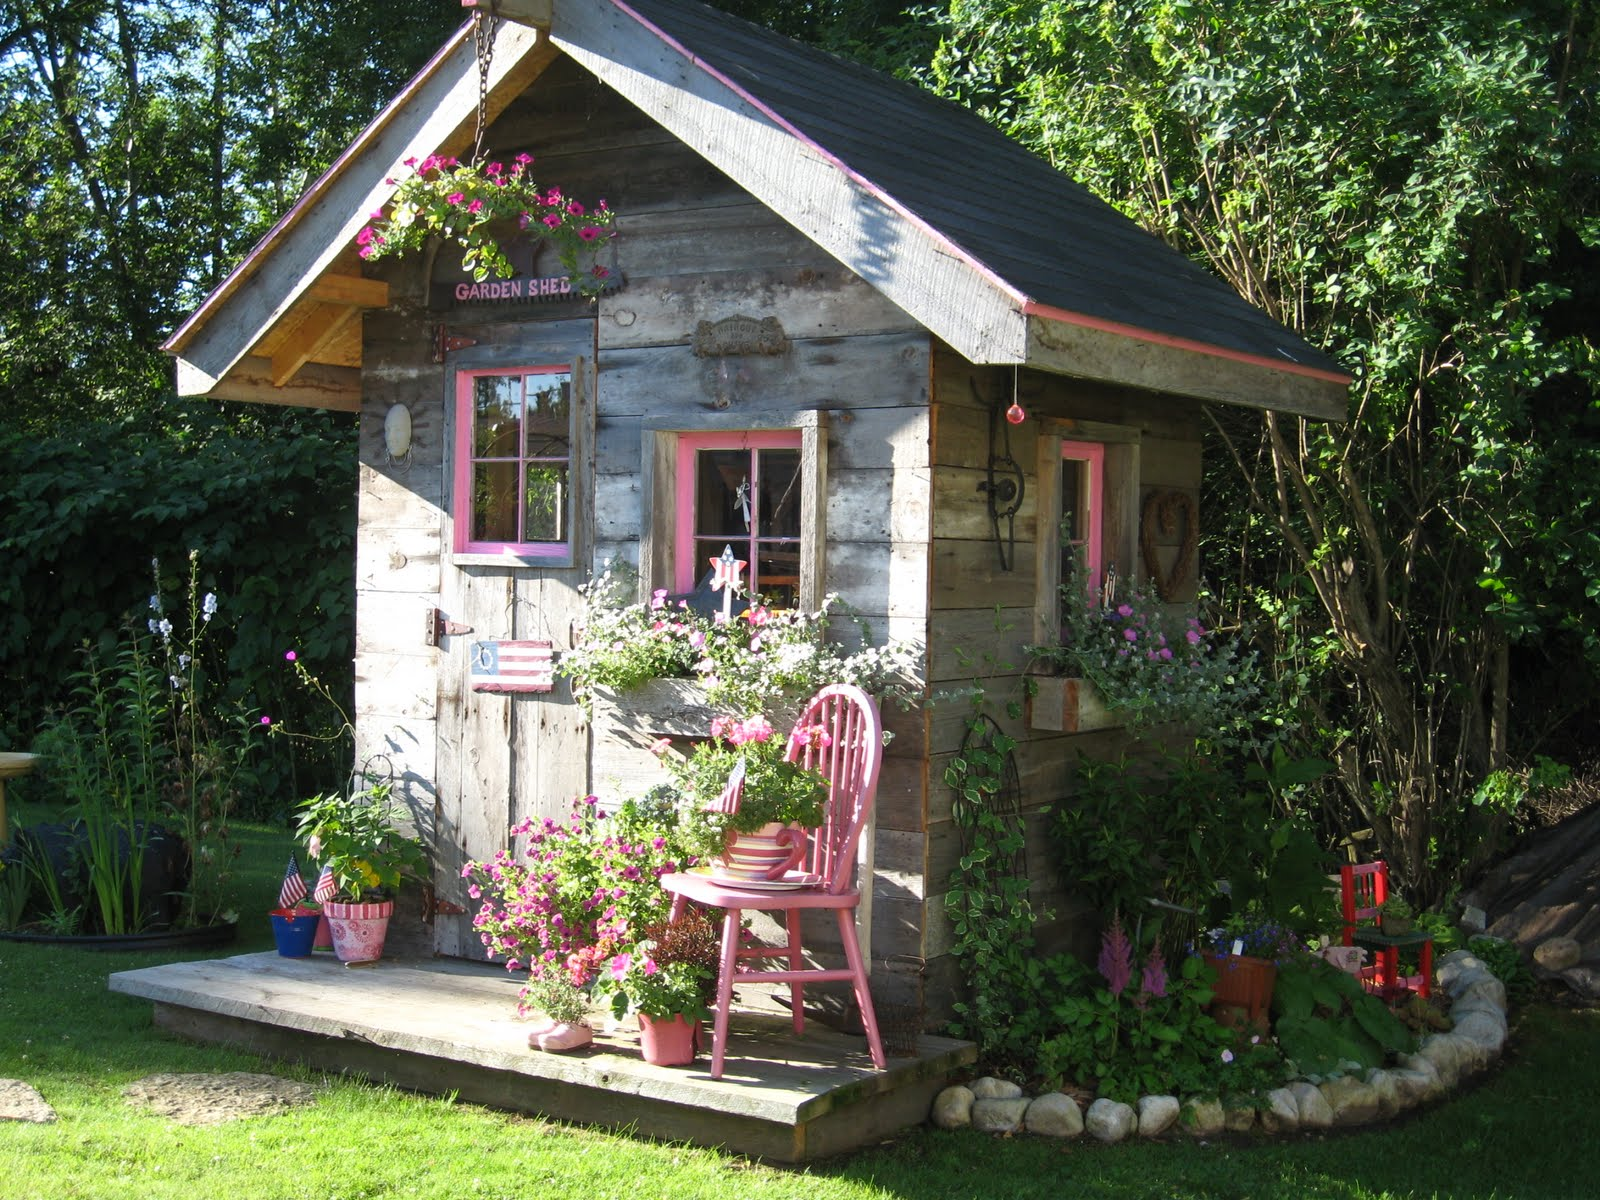 red house farm allotment society sheds. Black Bedroom Furniture Sets. Home Design Ideas